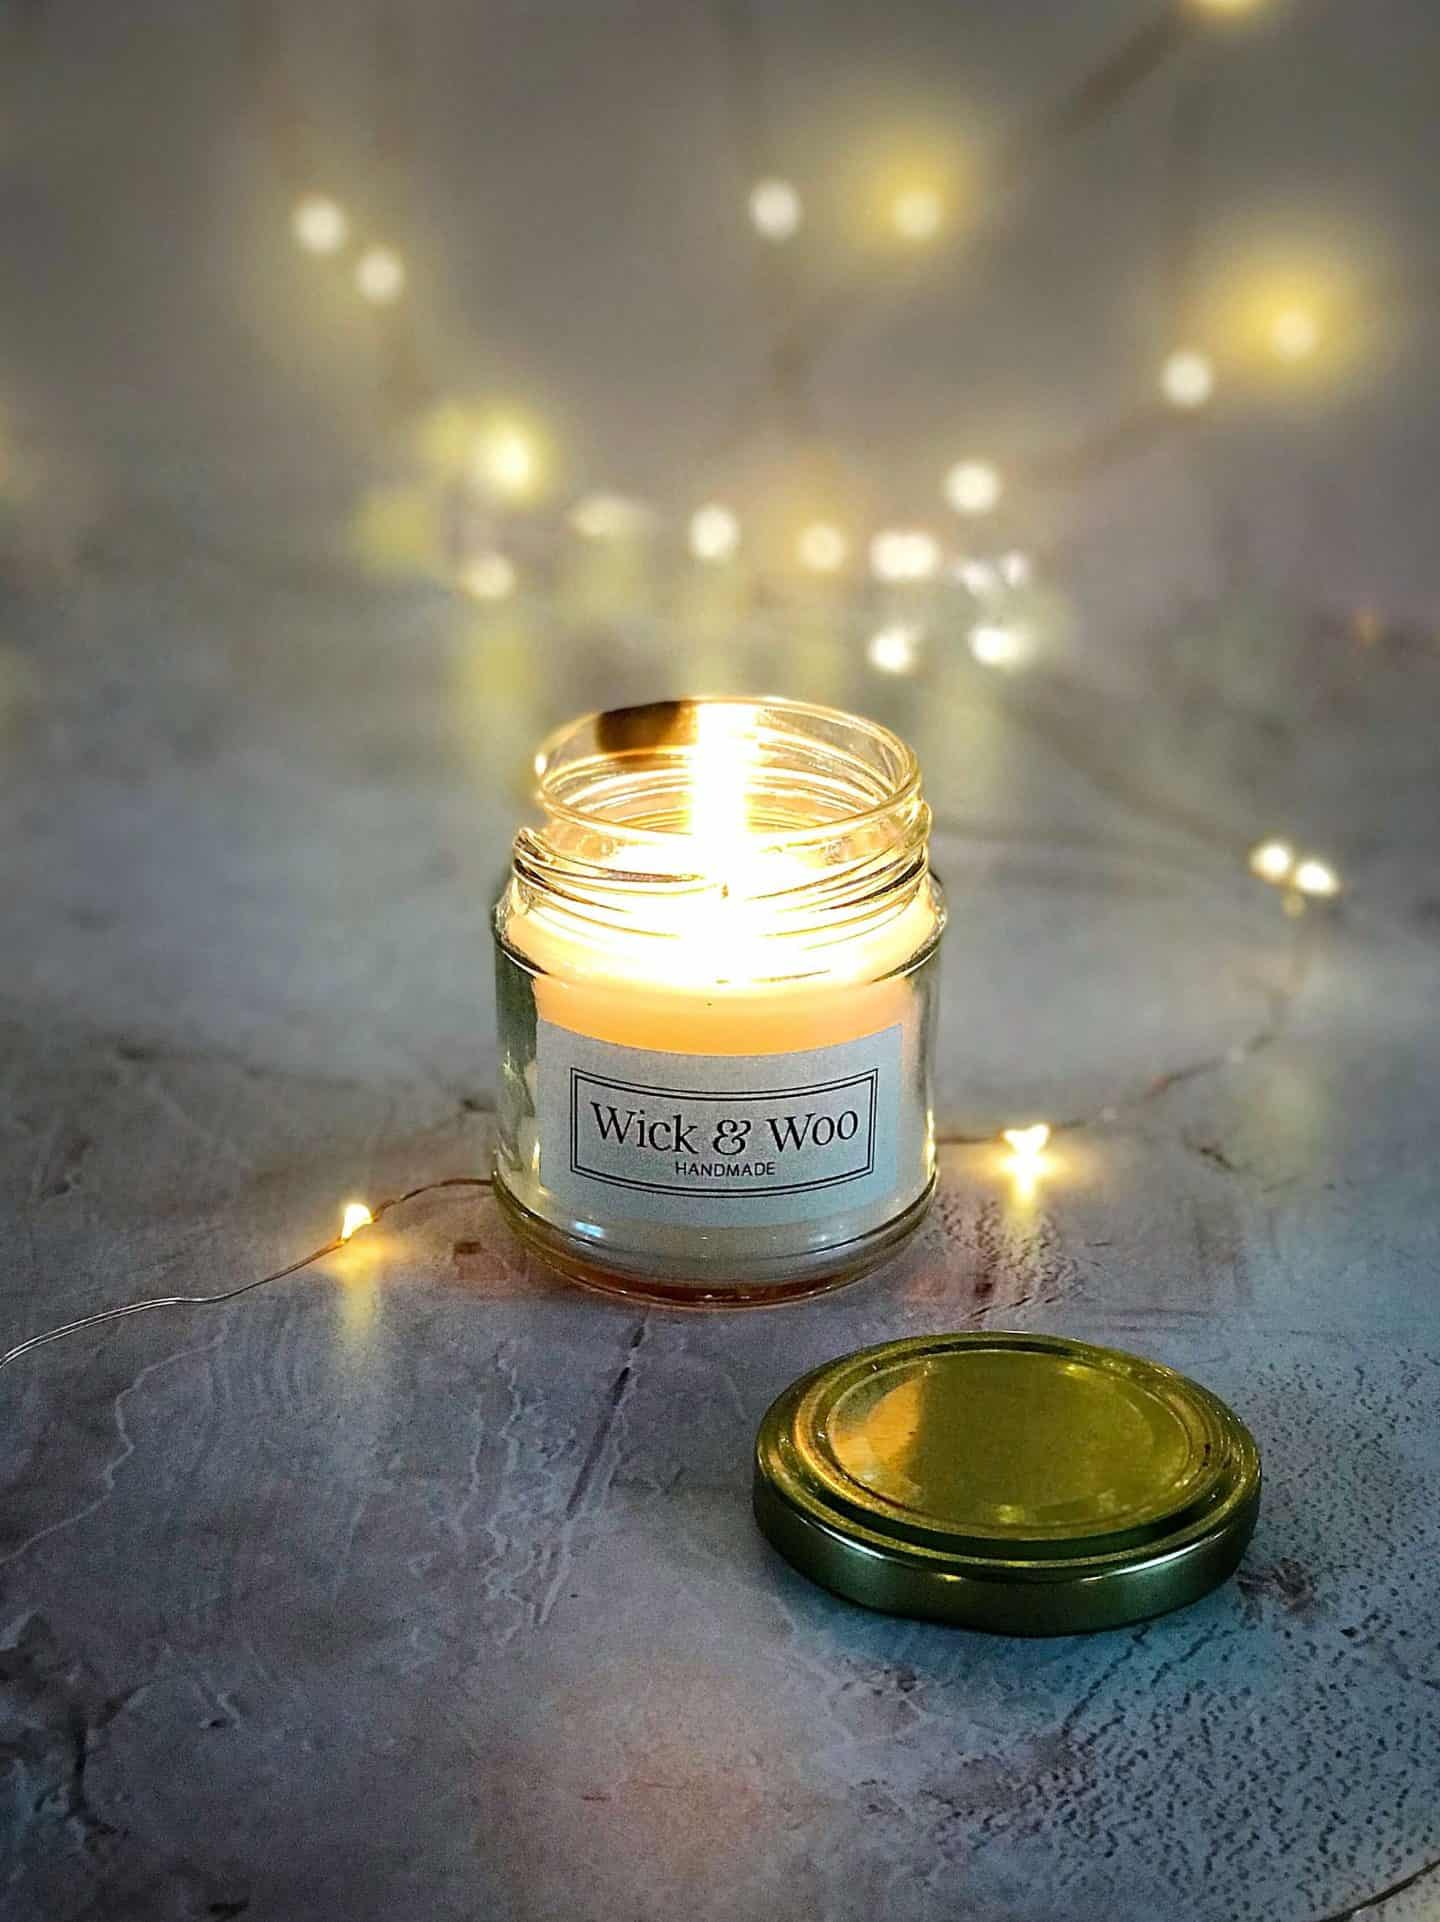 Wick & Woo ethical candle